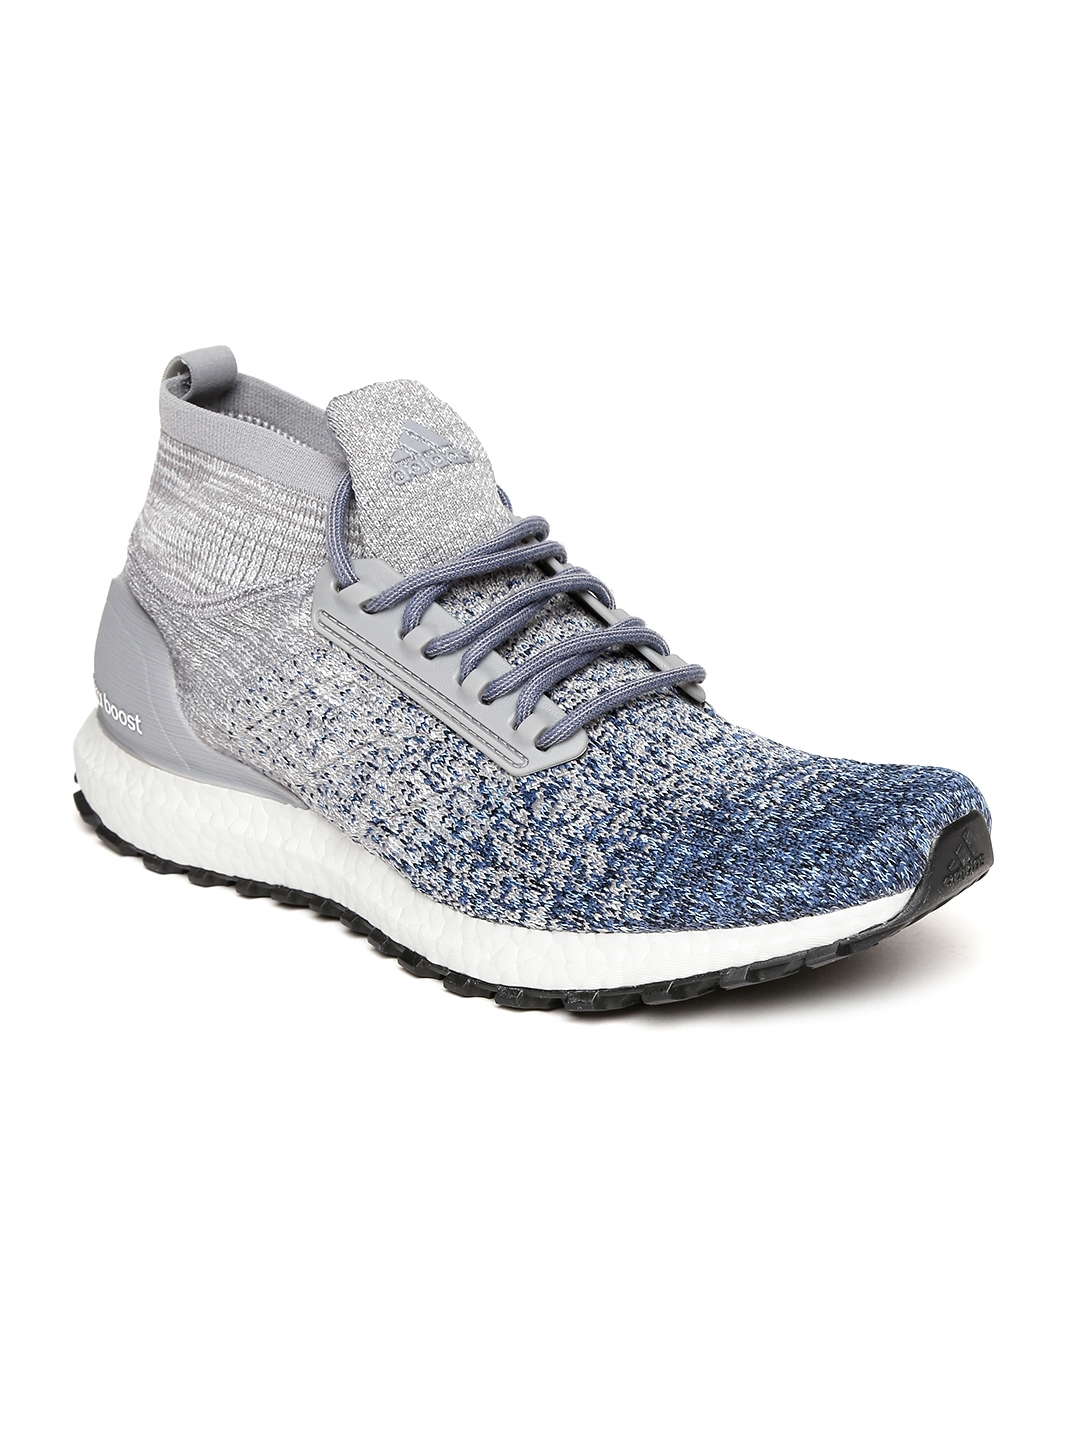 reputable site d39a0 51eb2 ADIDAS Men Grey & Blue Ultraboost All Terrain Running Shoes